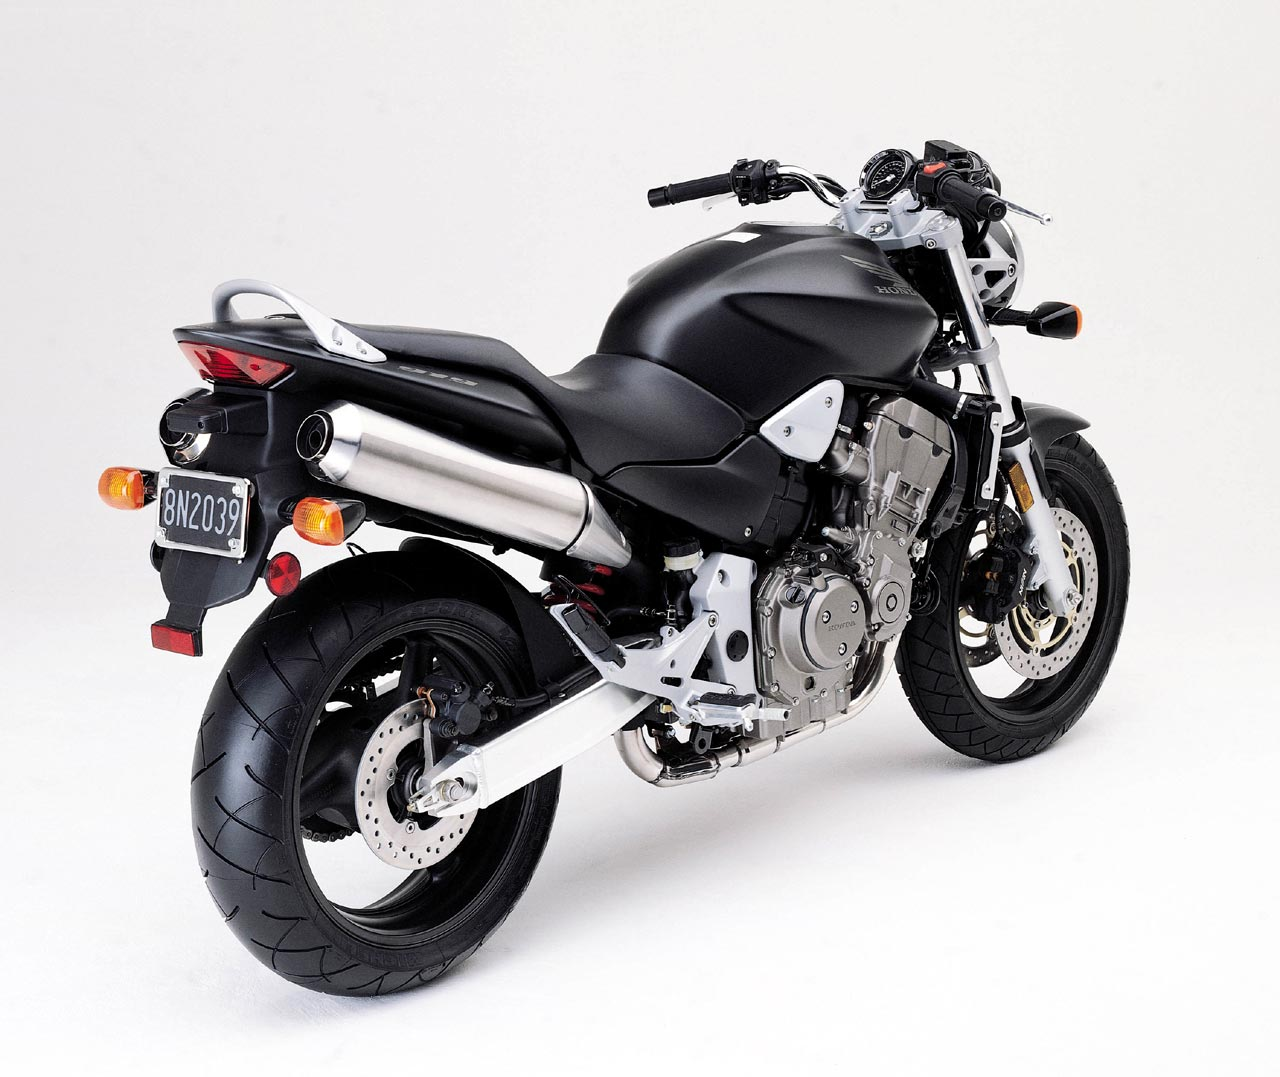 2003 honda 919 cb919 cb900f hornet 900. Black Bedroom Furniture Sets. Home Design Ideas